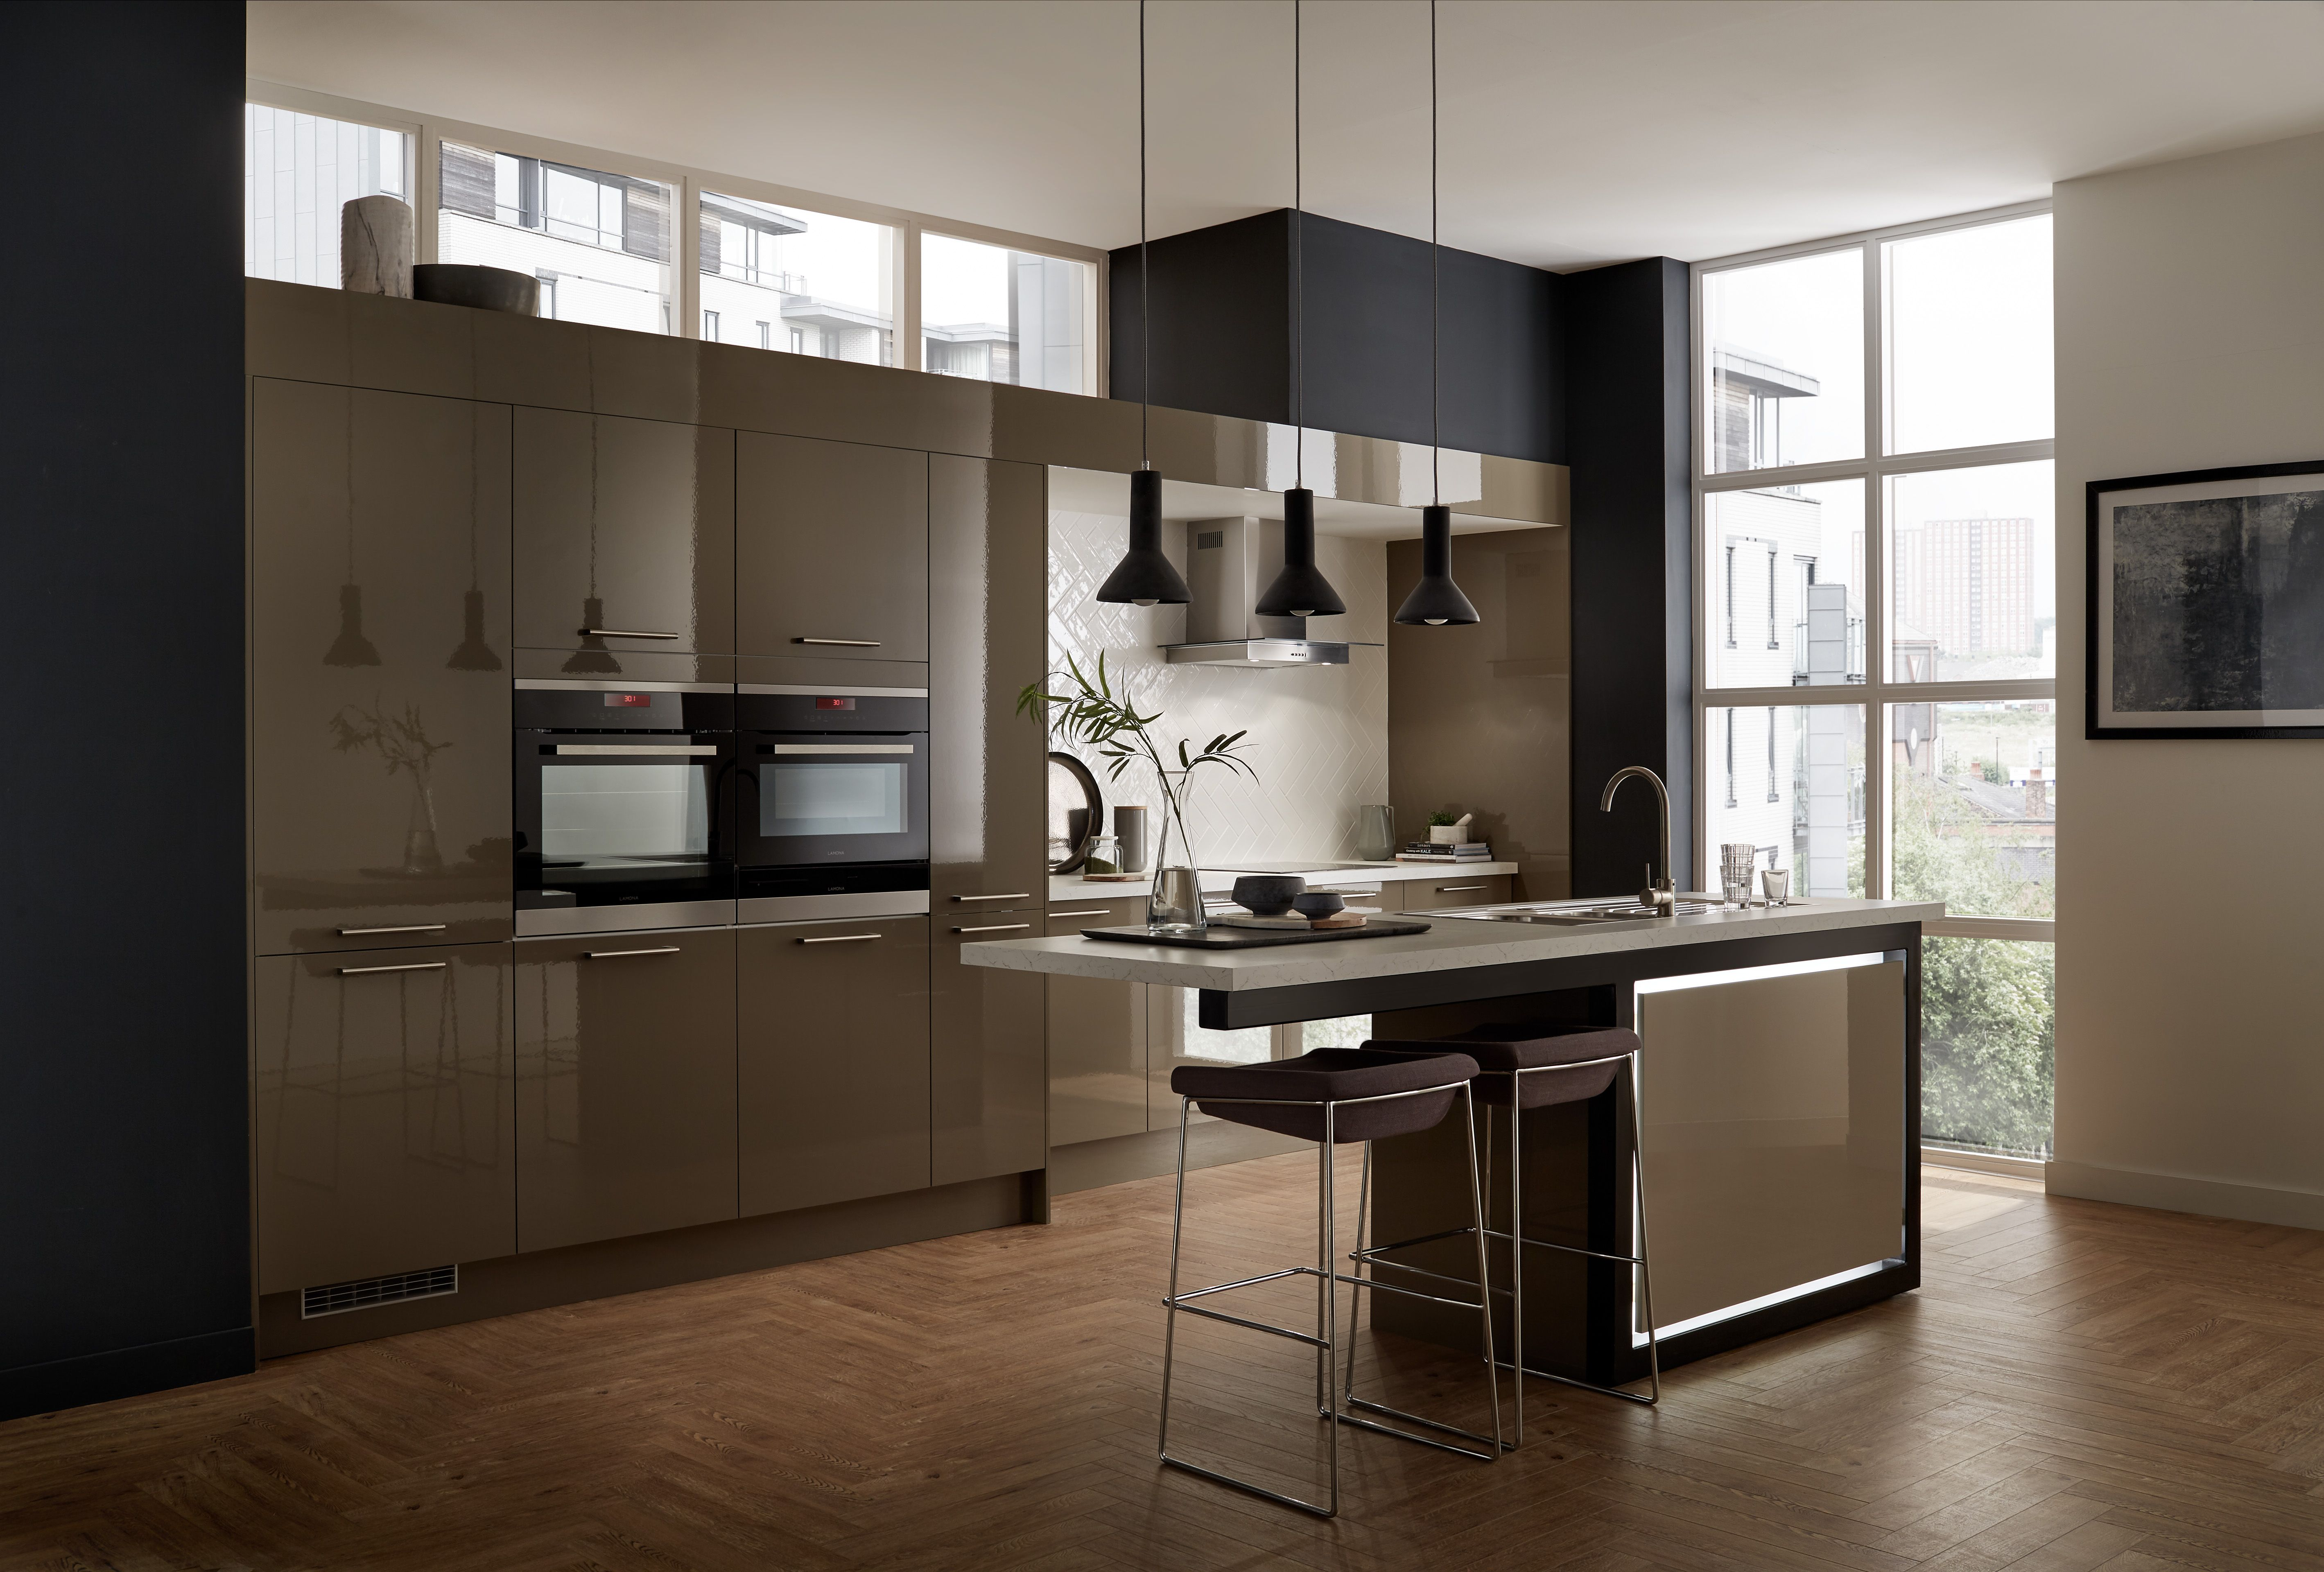 create a sleek and modern kitchen with greenwich gloss clay a beautiful stylish and practical kitchen island created with our greenwich gloss clay kitchen range part of the universal collection by howdens joinery